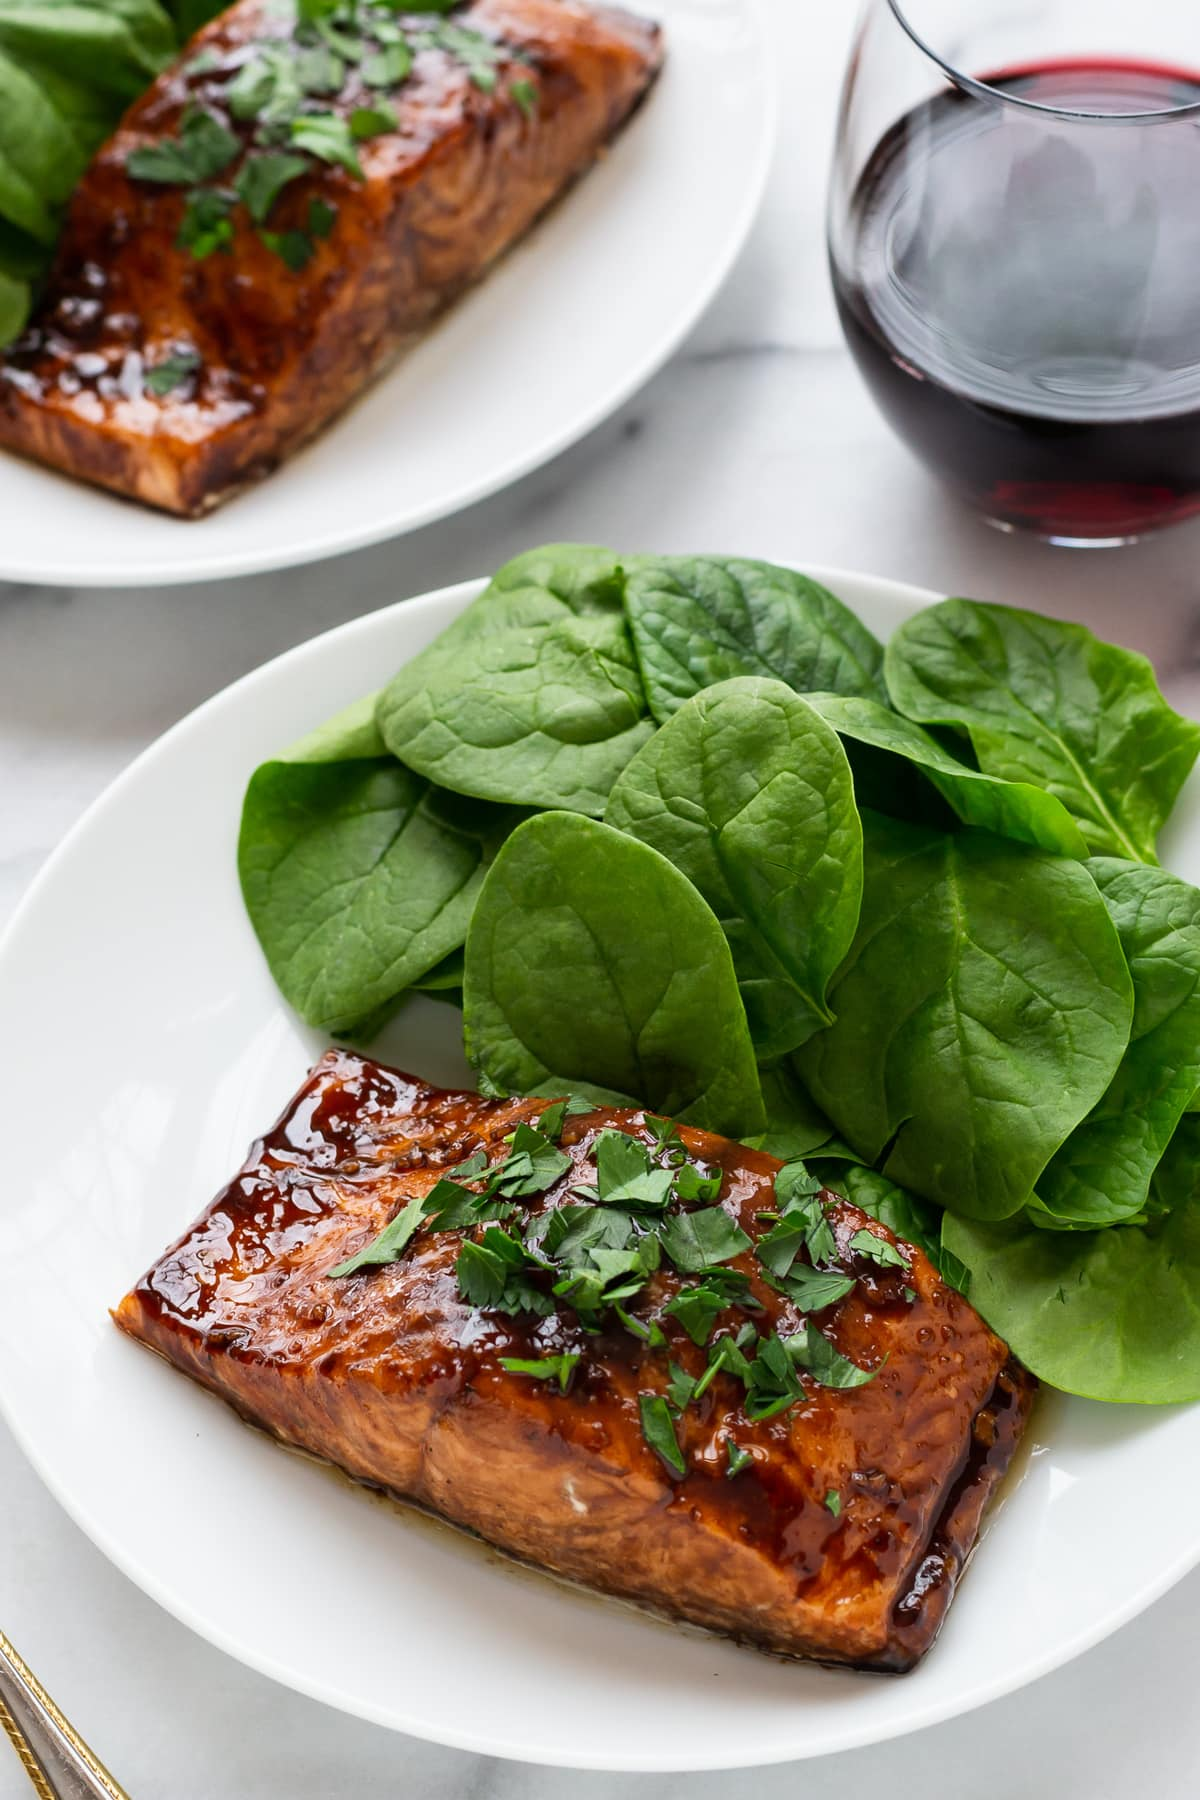 2 dinner plates of Balsamic Glazed Salmon with spinach